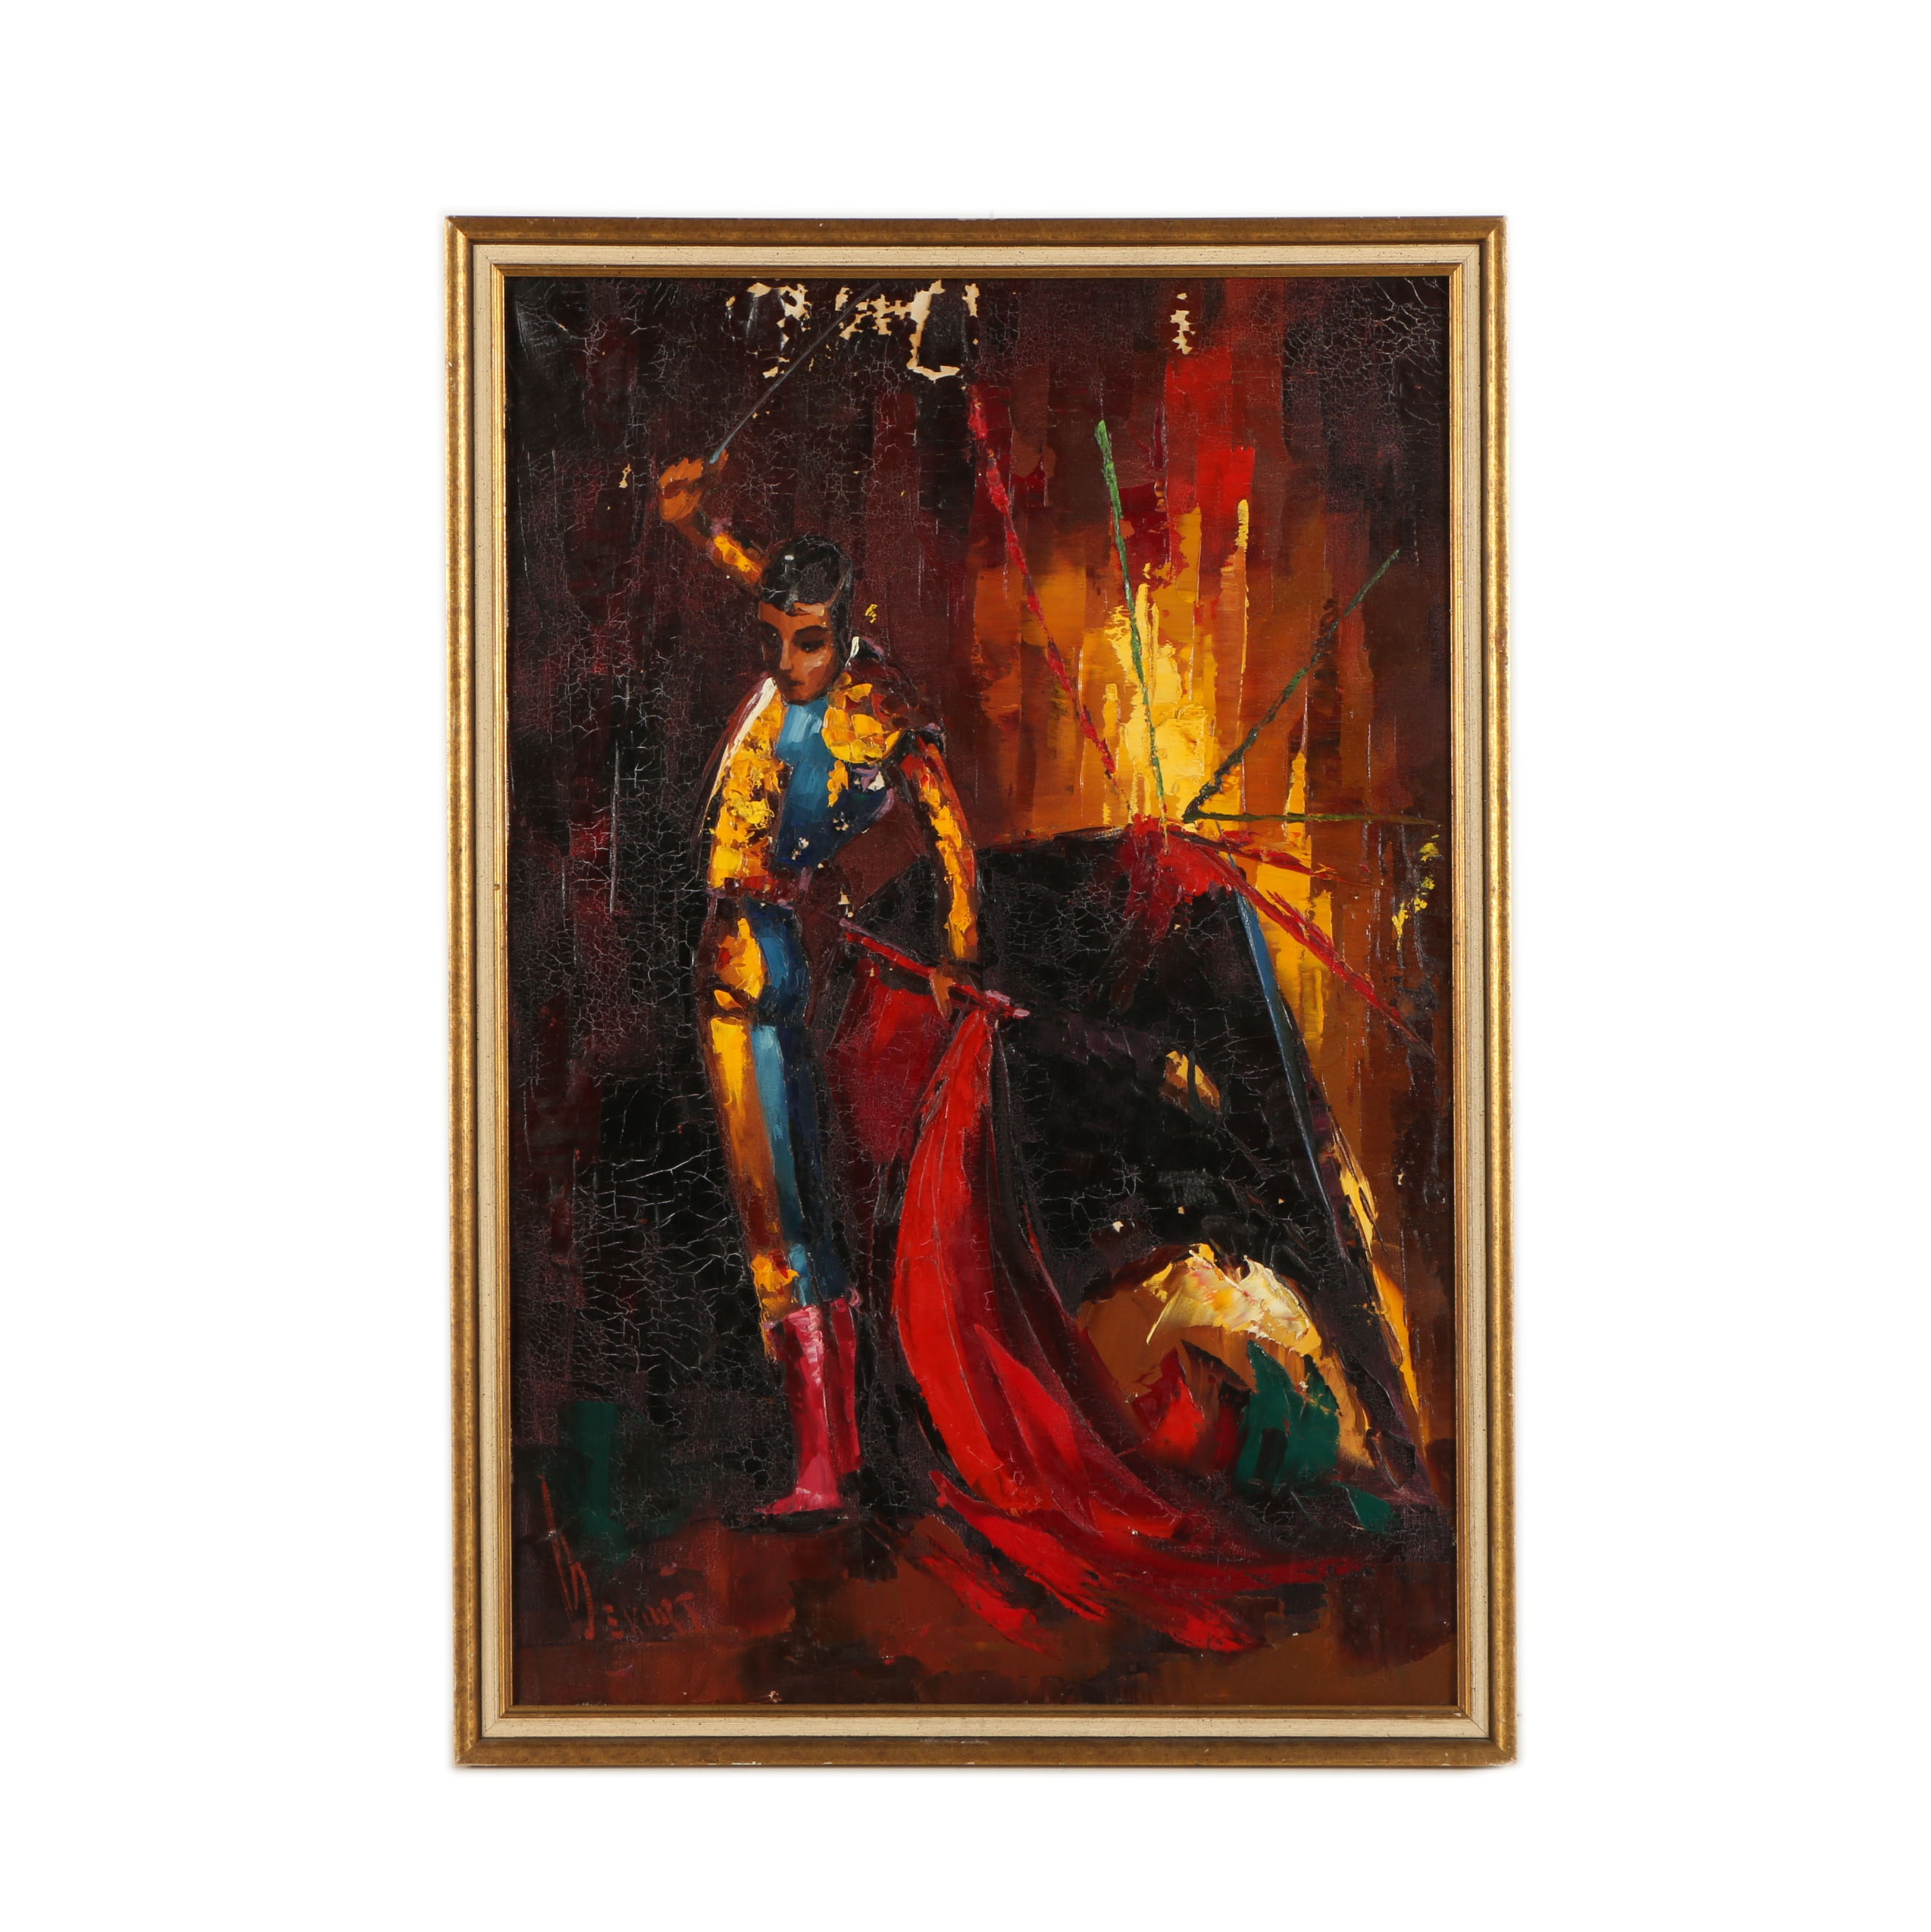 Oil on Canvas Painting of Matador and Bull